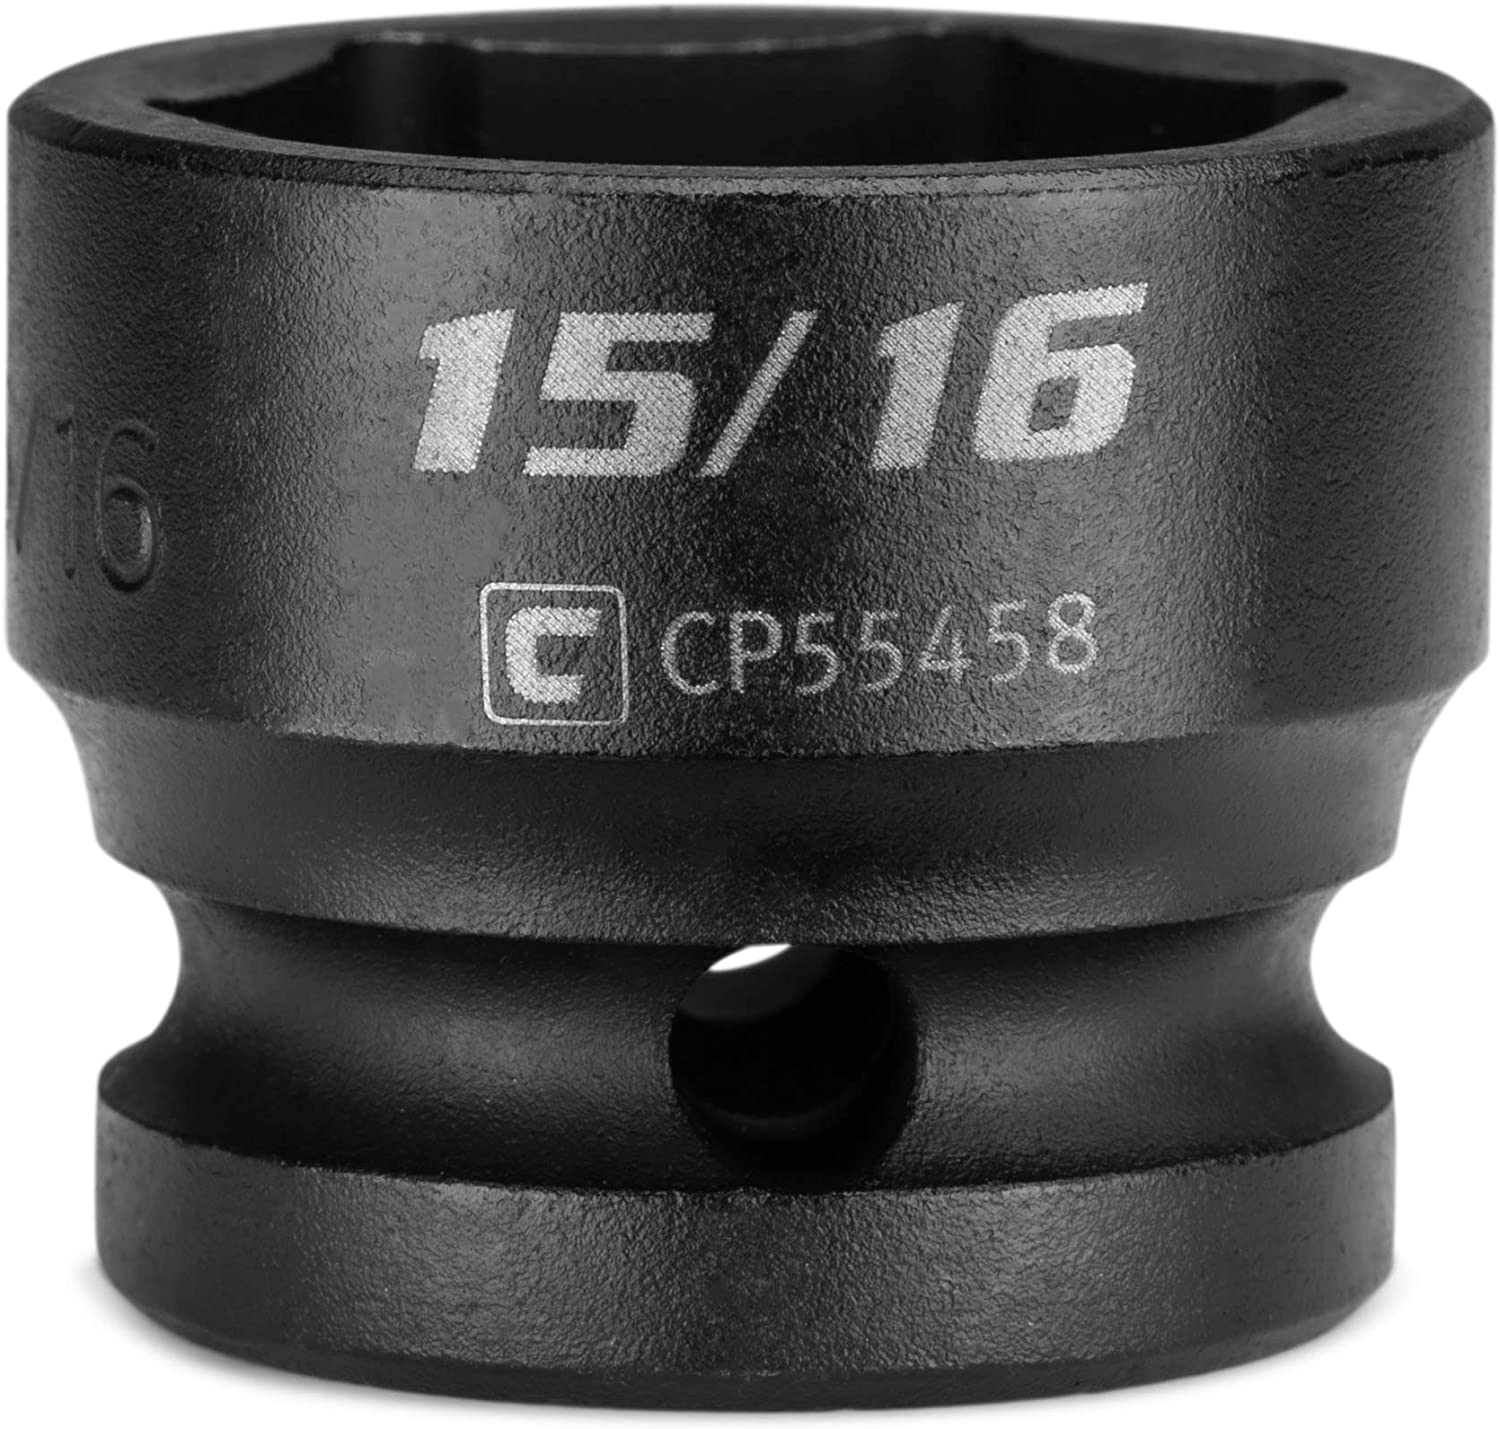 SAE Capri Tools 1//2 in Stubby Impact Socket 6-Point Drive 1//2 in